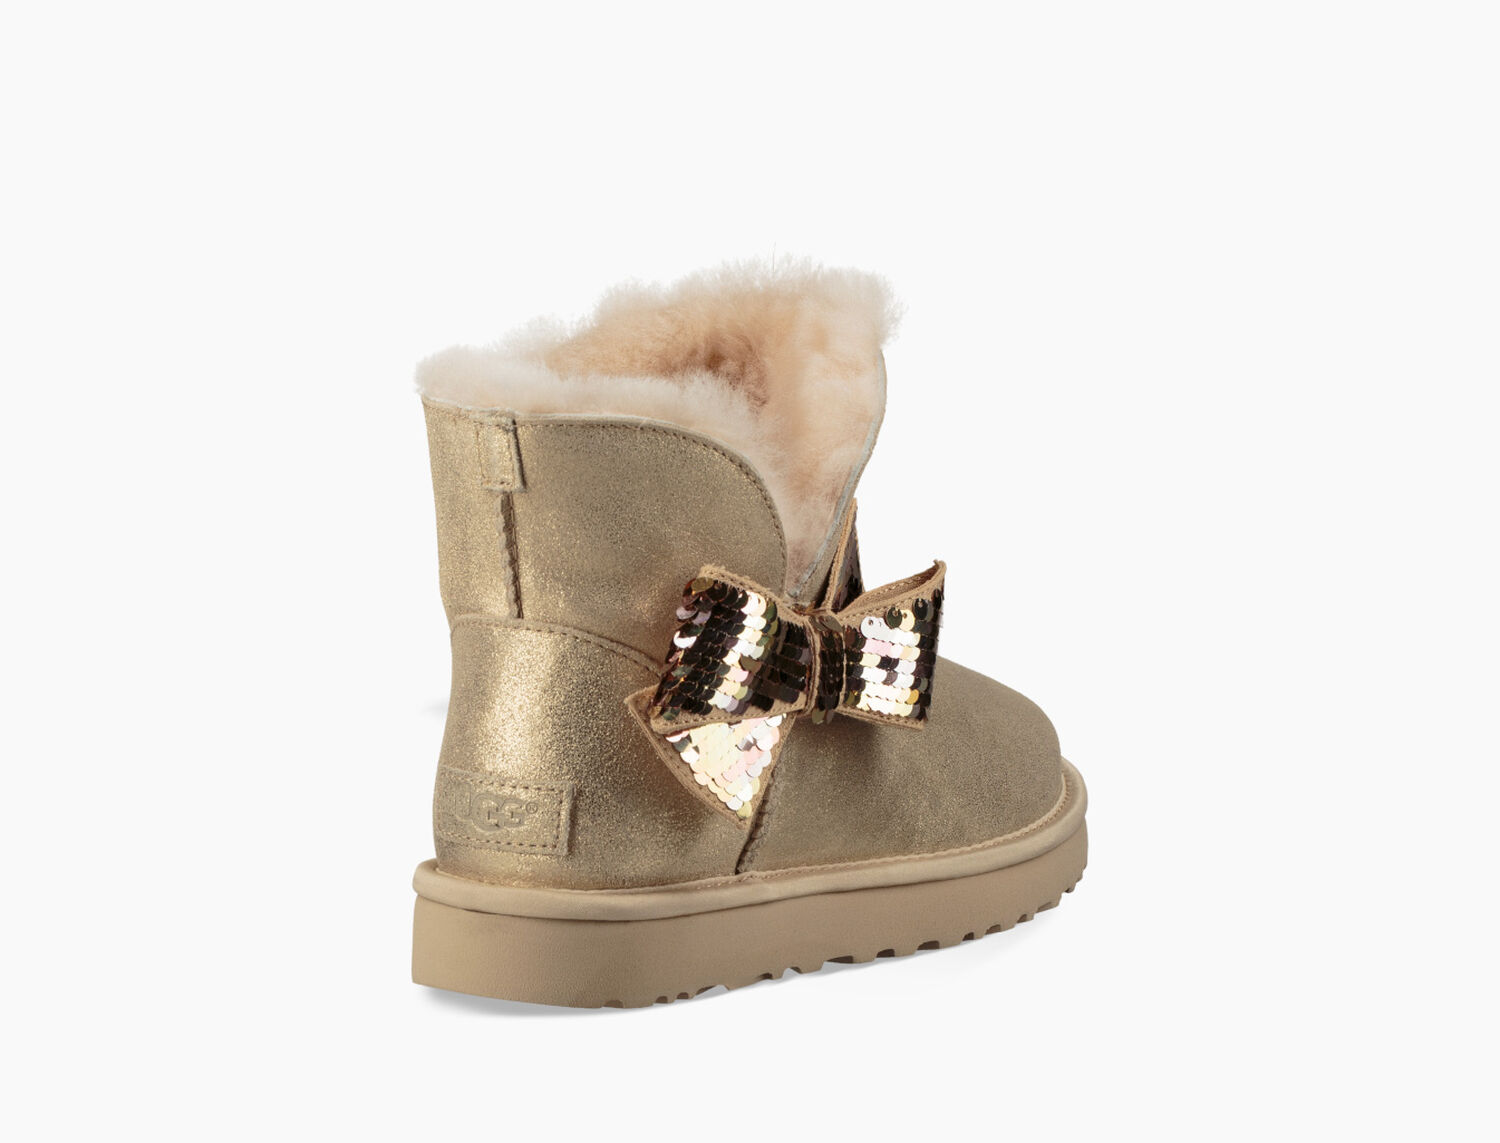 aaf825ef3a3 Women's Share this product Mini Sequin Bow Boot